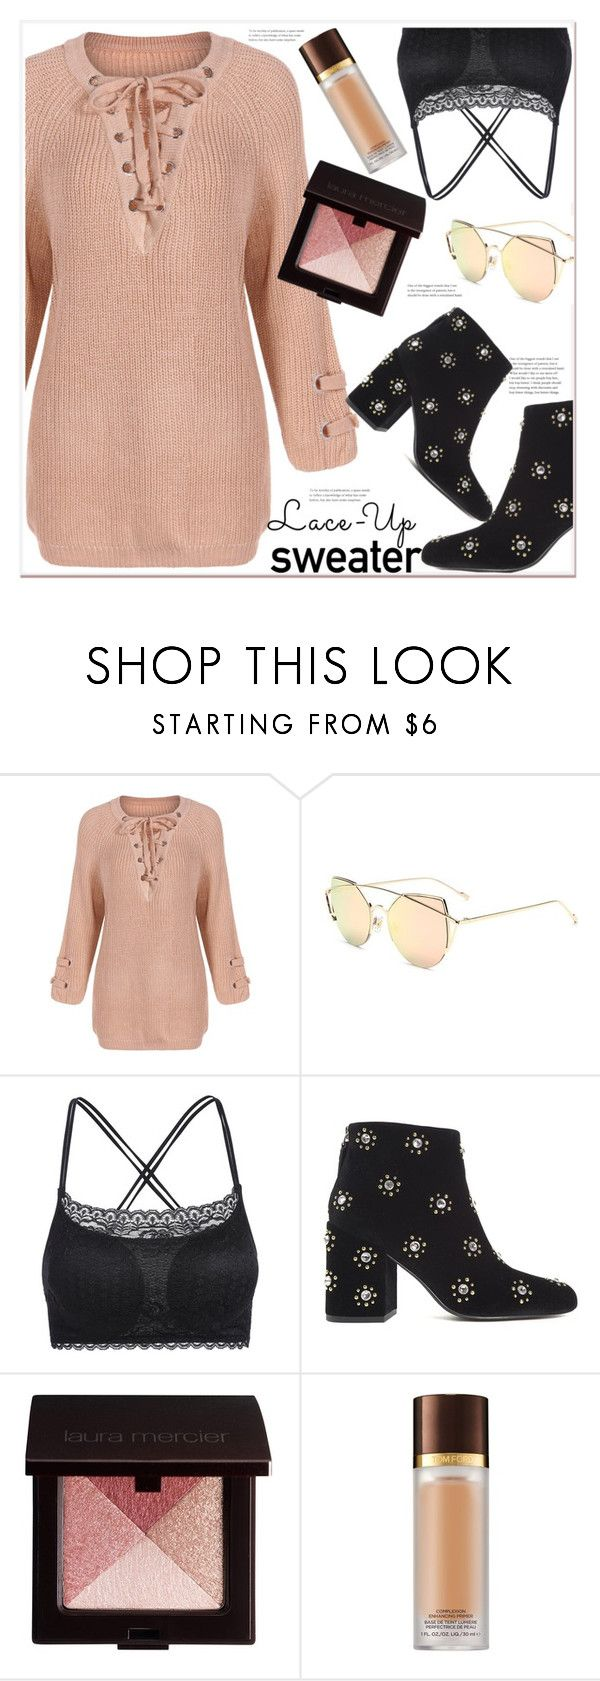 """""""lace-up sweater"""" by mycherryblossom ❤ liked on Polyvore featuring Senso, Laura Mercier and Tom Ford"""